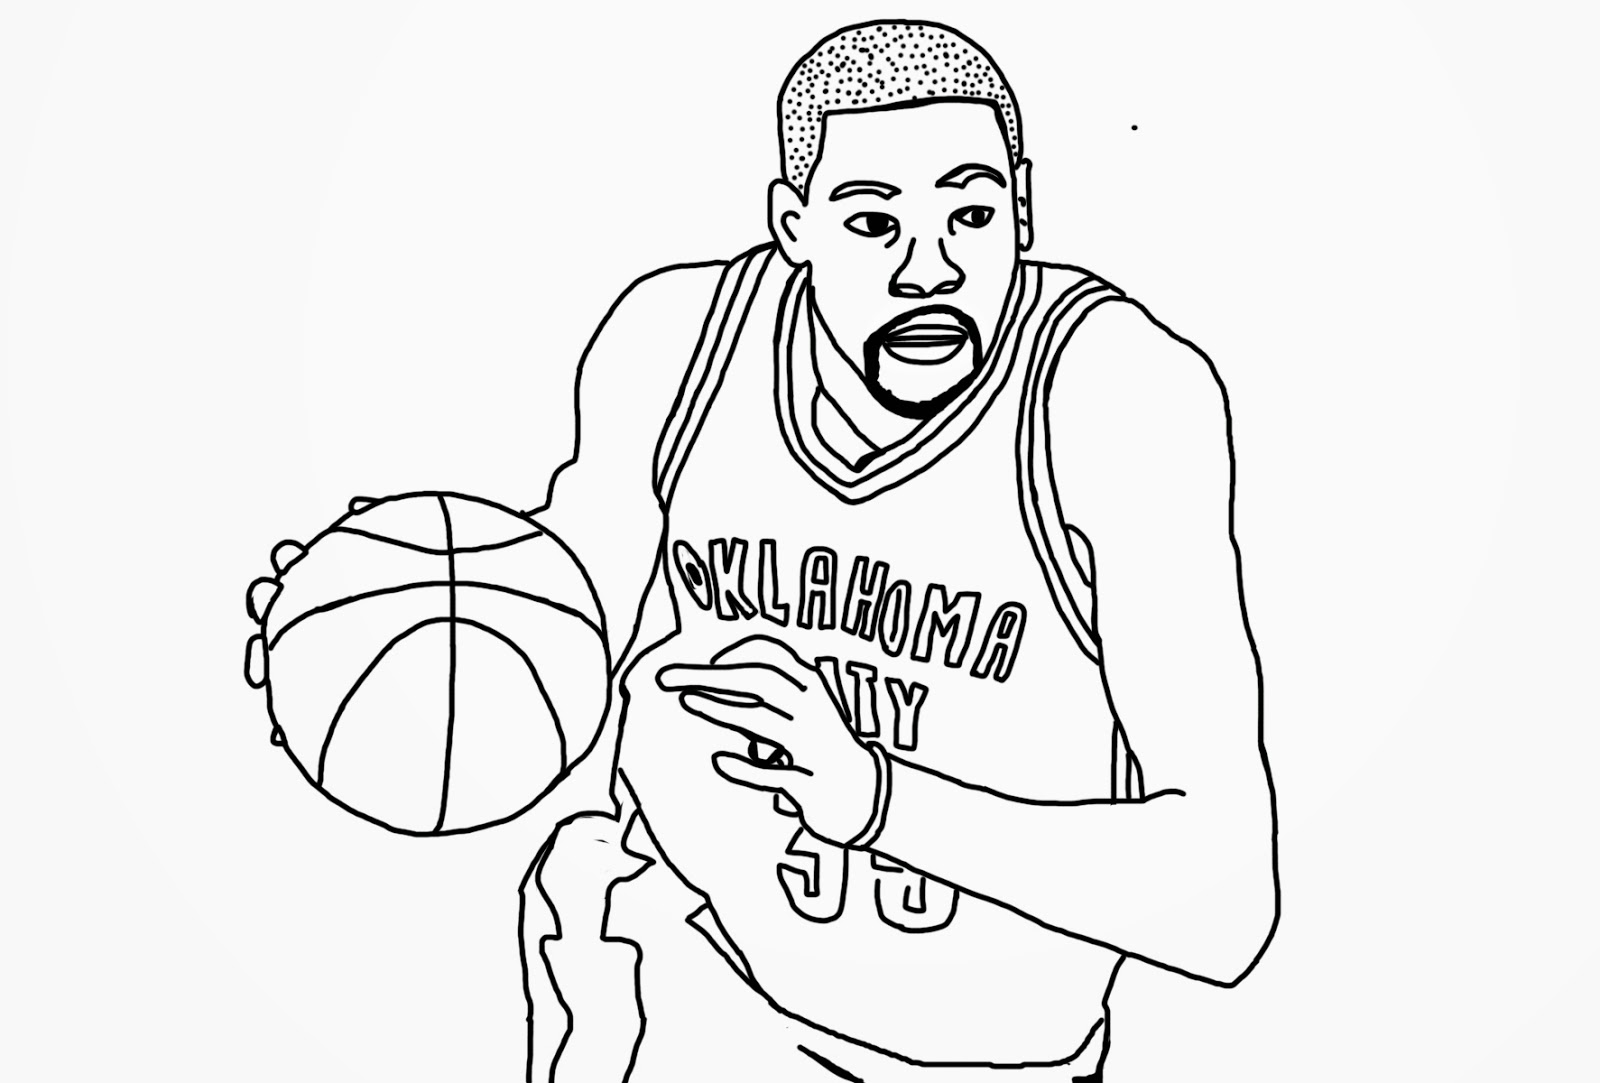 russell westbrook coloring page